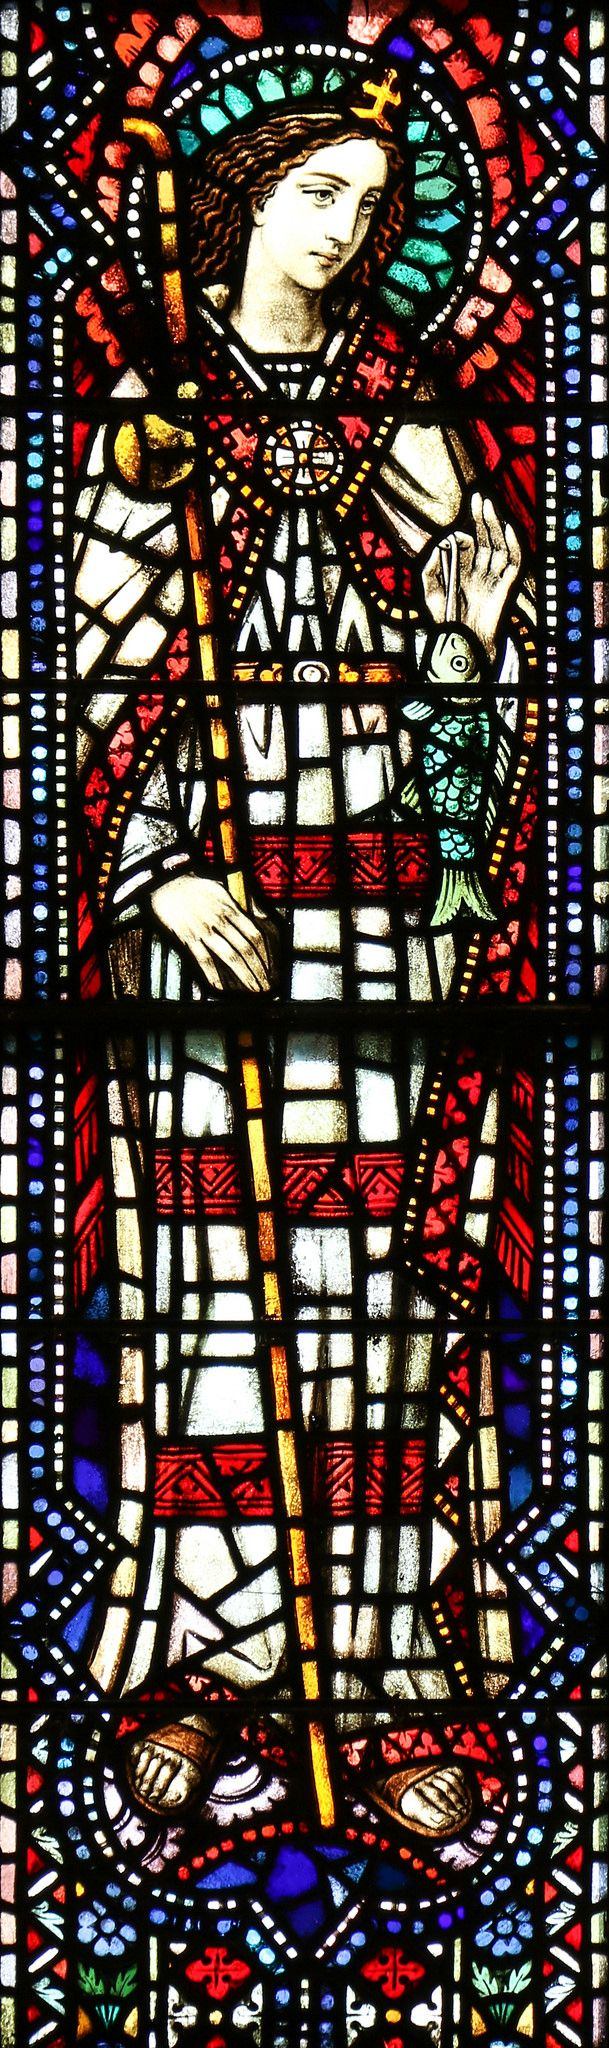 """Saint Raphael / San Rafael // """"I am the angel Raphael: I stand before the Lord. You, for your part, give thanks to the Lord, tell all his deeds.""""  // Stained glass from Blessed Sacrament Cathedral in Greensburg, PA // photo: Lawrence OP"""